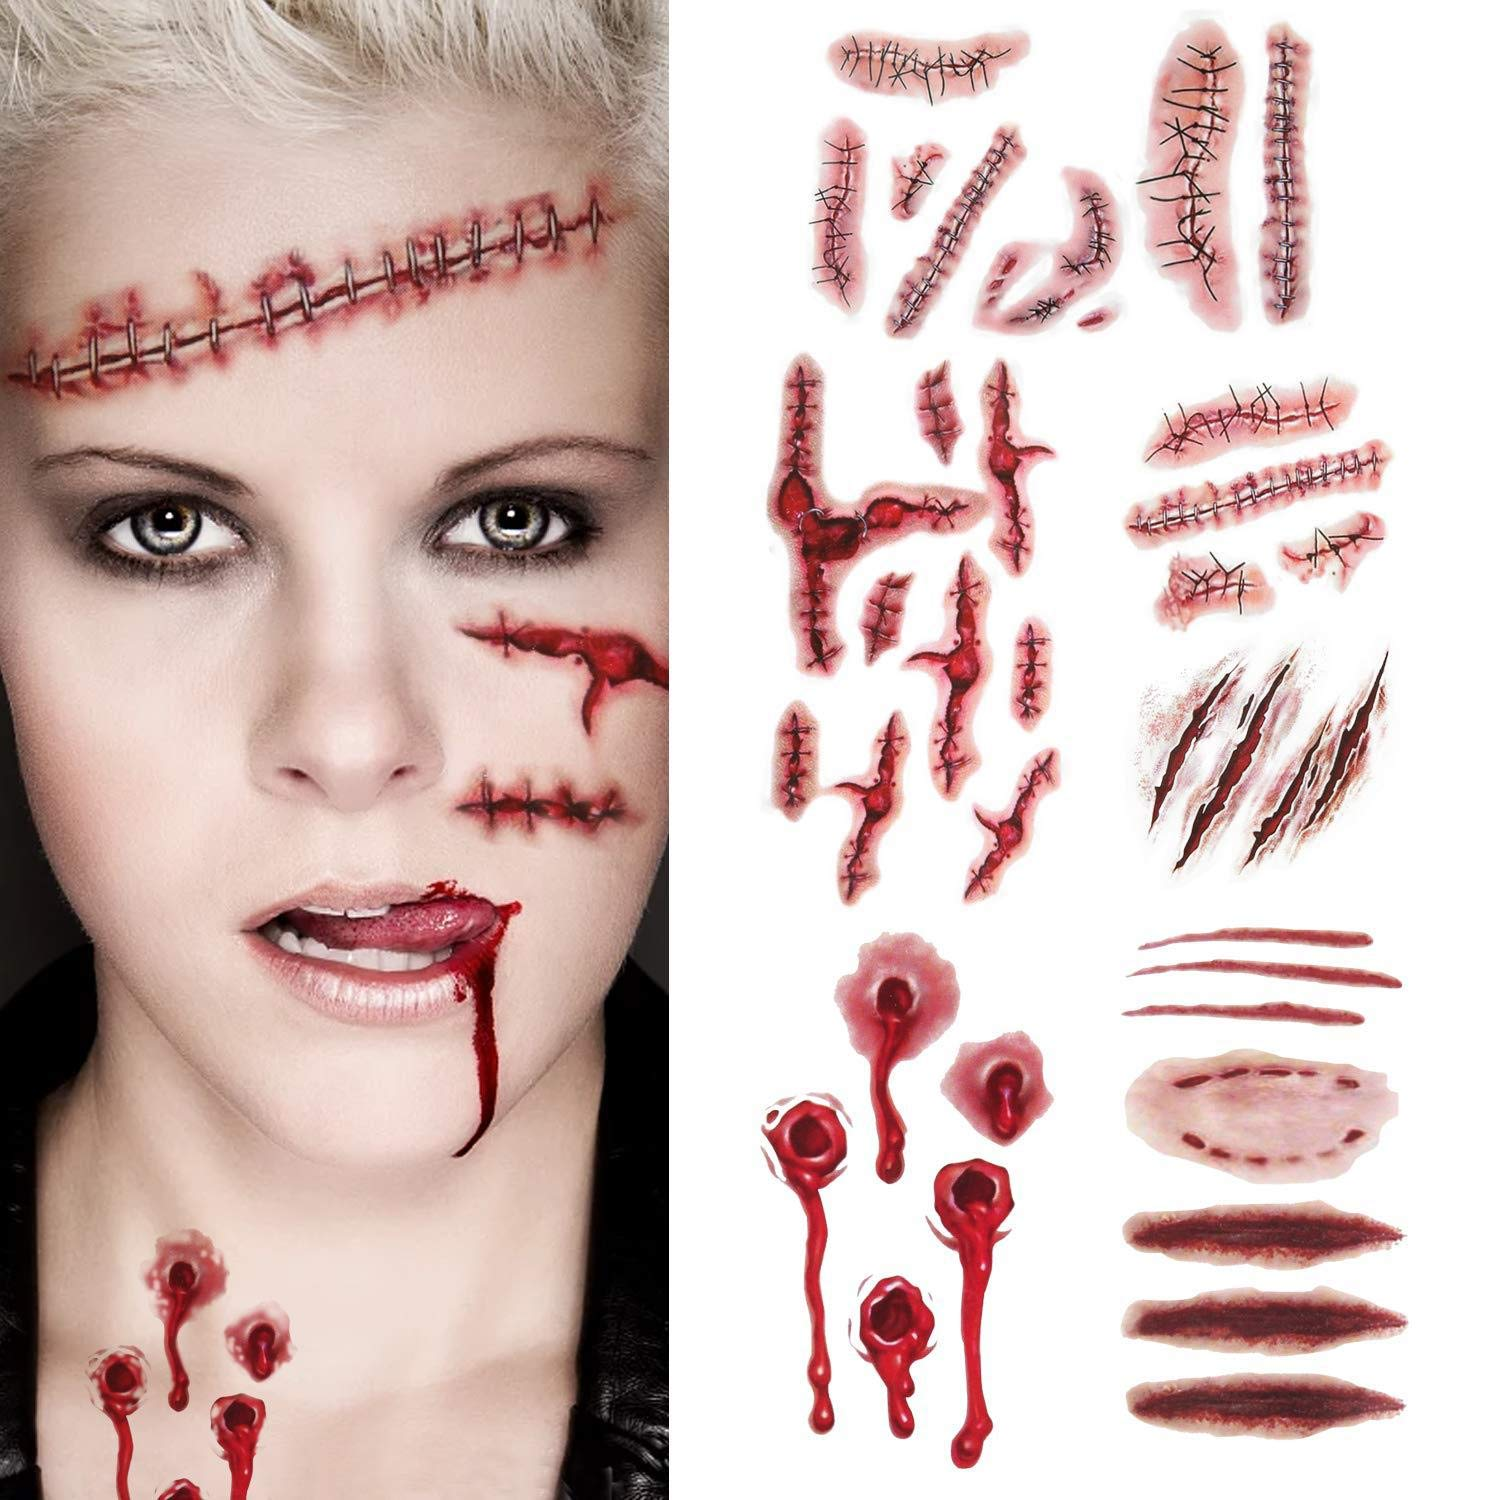 Horror Realistic Fake Bloody Wound Stitch Scar Scab Waterproof Temporary Tattoo Sticker Halloween Masquerade Prank Makeup Props Zombies Cosplay-9PCS